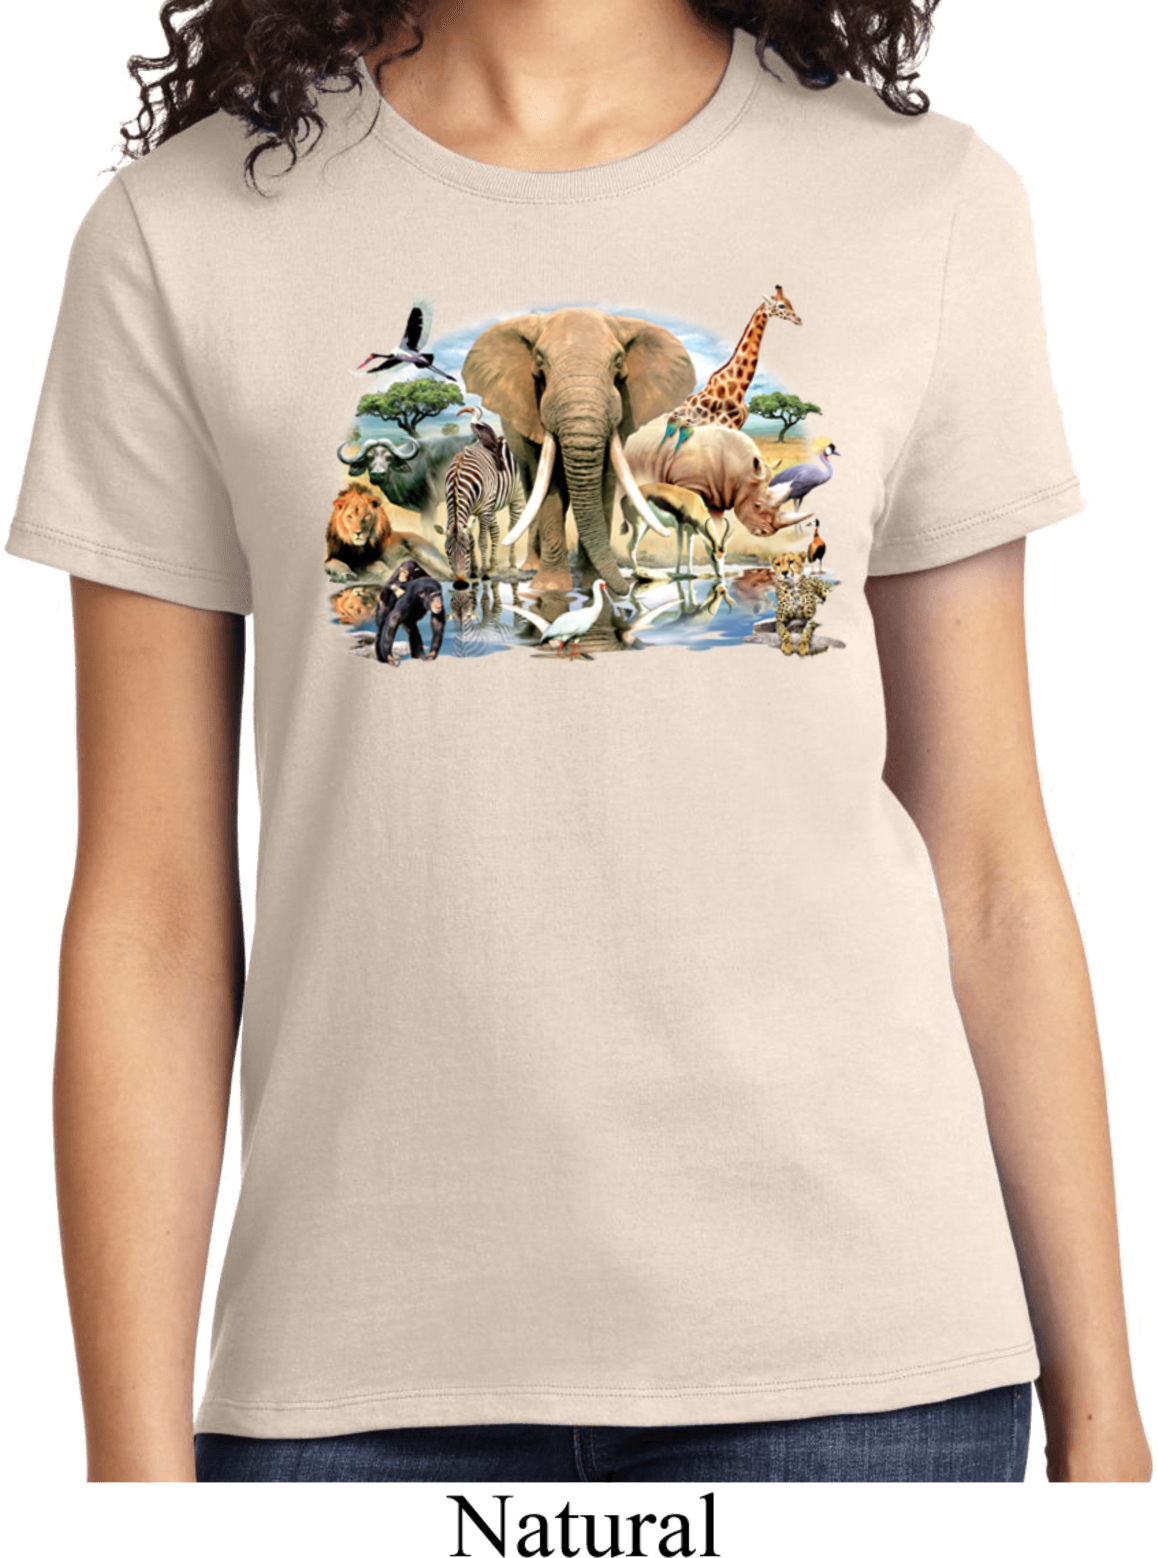 Ladies animal shirt african oasis tee t shirt african for Animal tee shirts online